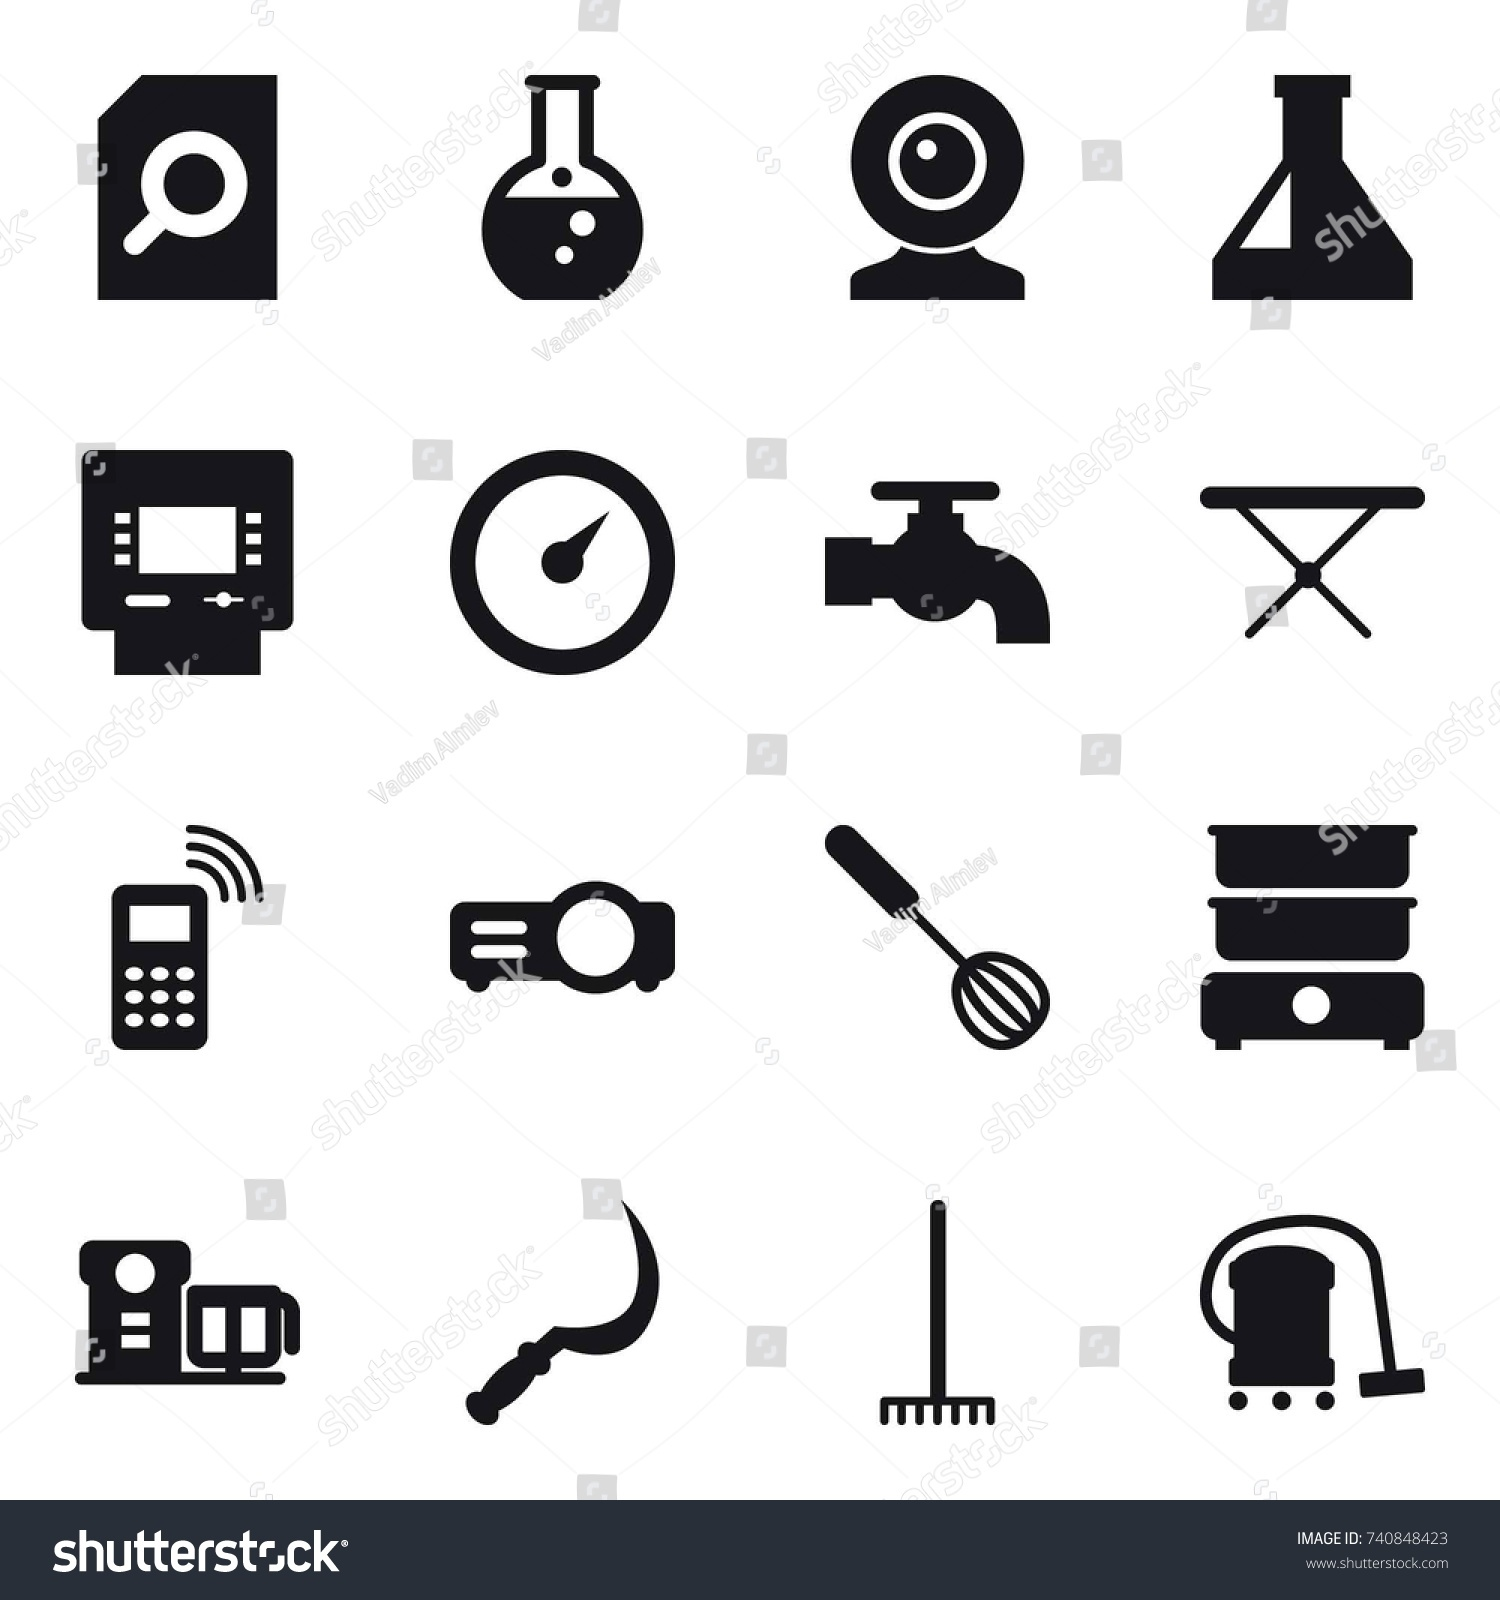 16 Vector Icon Set Search Document Stock Royalty Free Barometer Signal Conditioner Round Flask Web Cam Atm